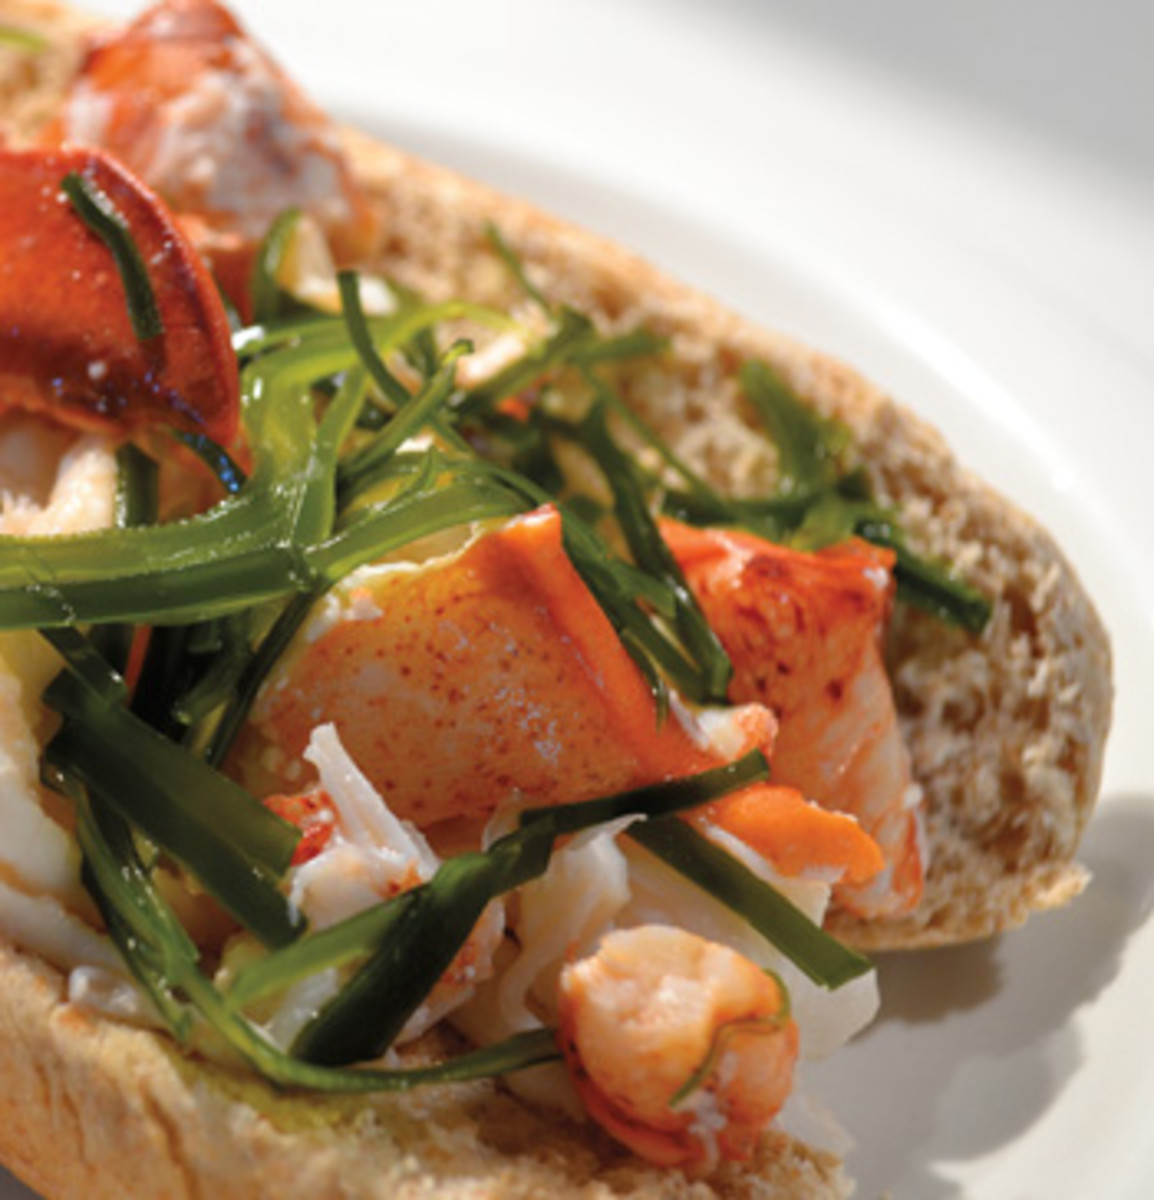 What could be more Maine than a lobster roll? One topped with locally grown sea vegetables.